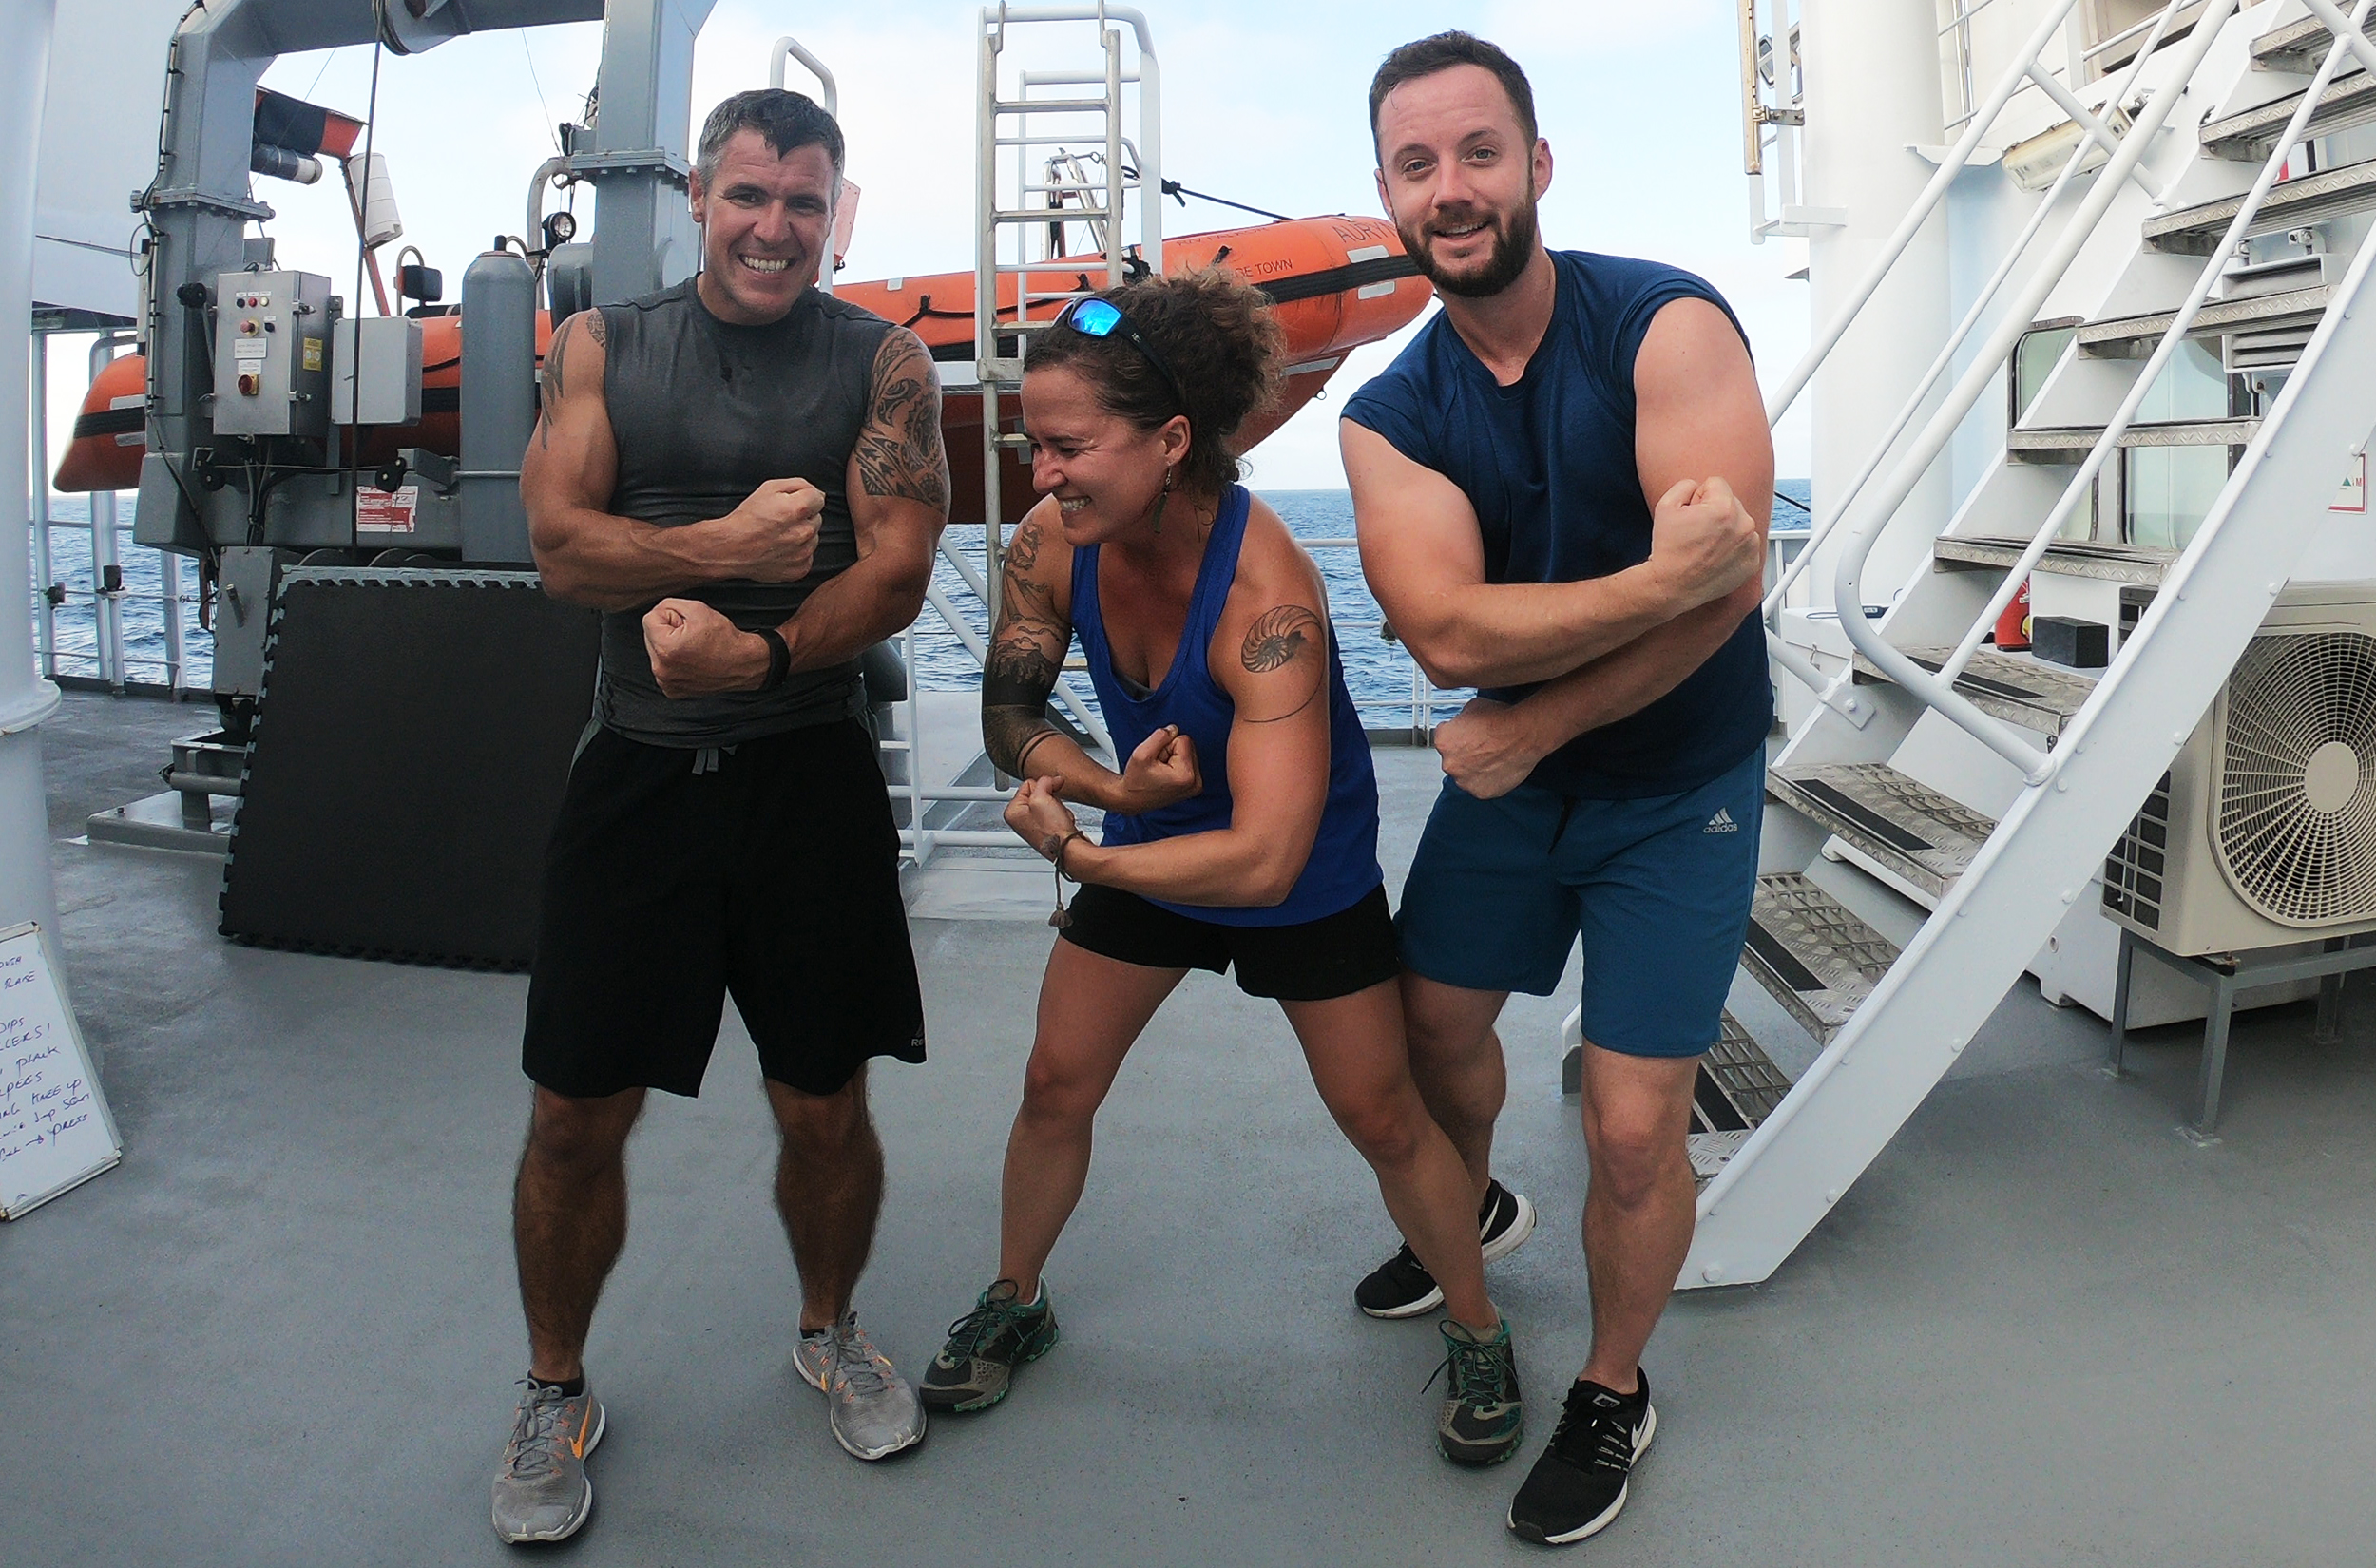 So swole.  Working out with these guys keeps me strong and sane.